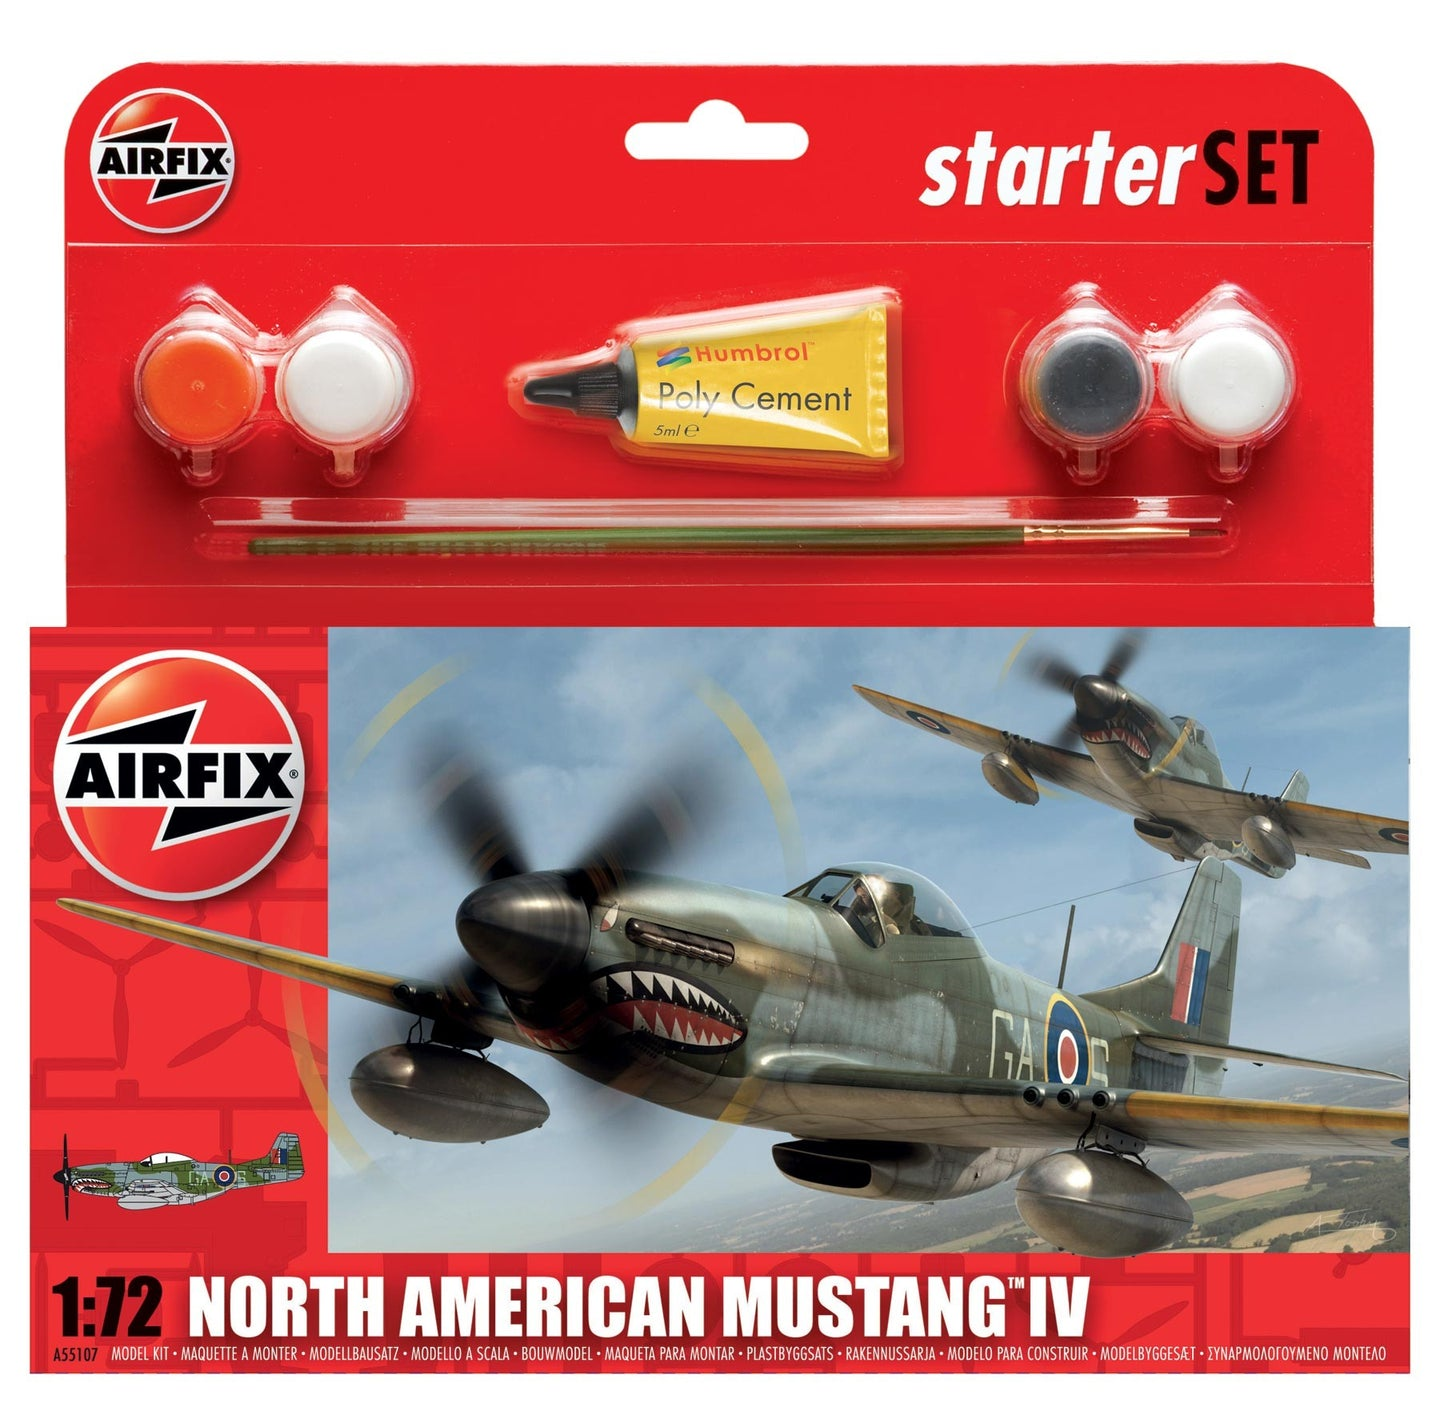 Airfix Starter Set 1/72 British North American Mustang IV A55107